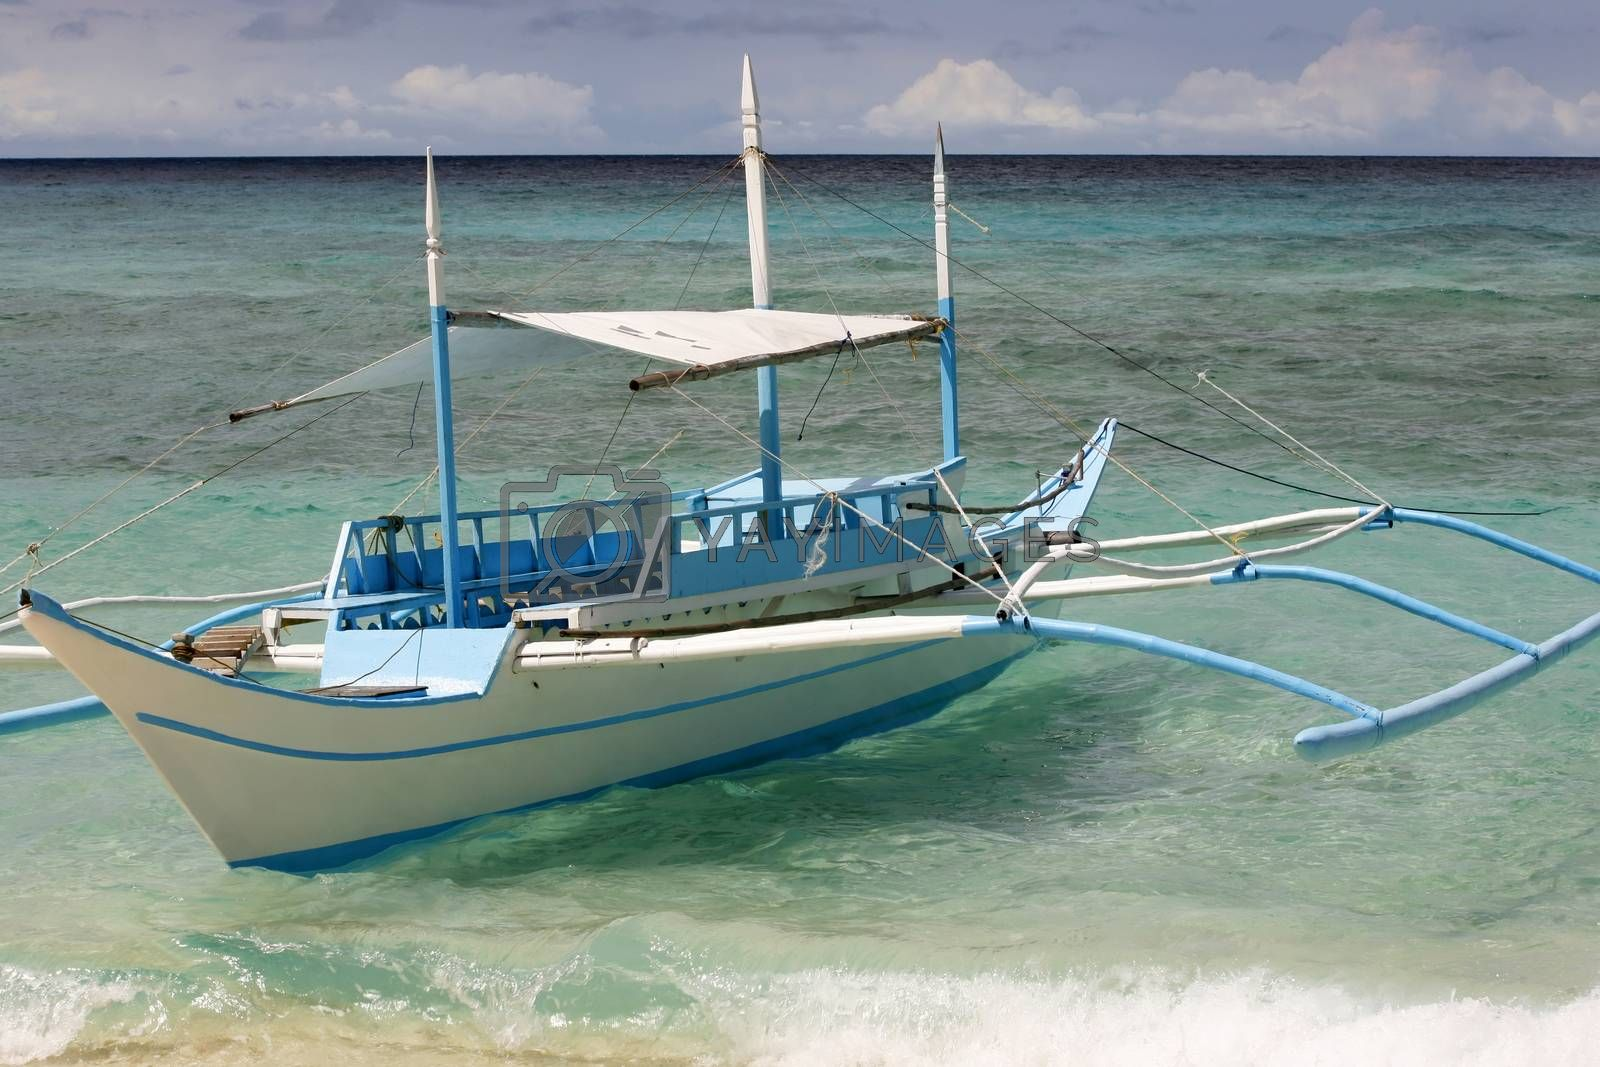 Small boat moored at seaside. Boracay. Philippines